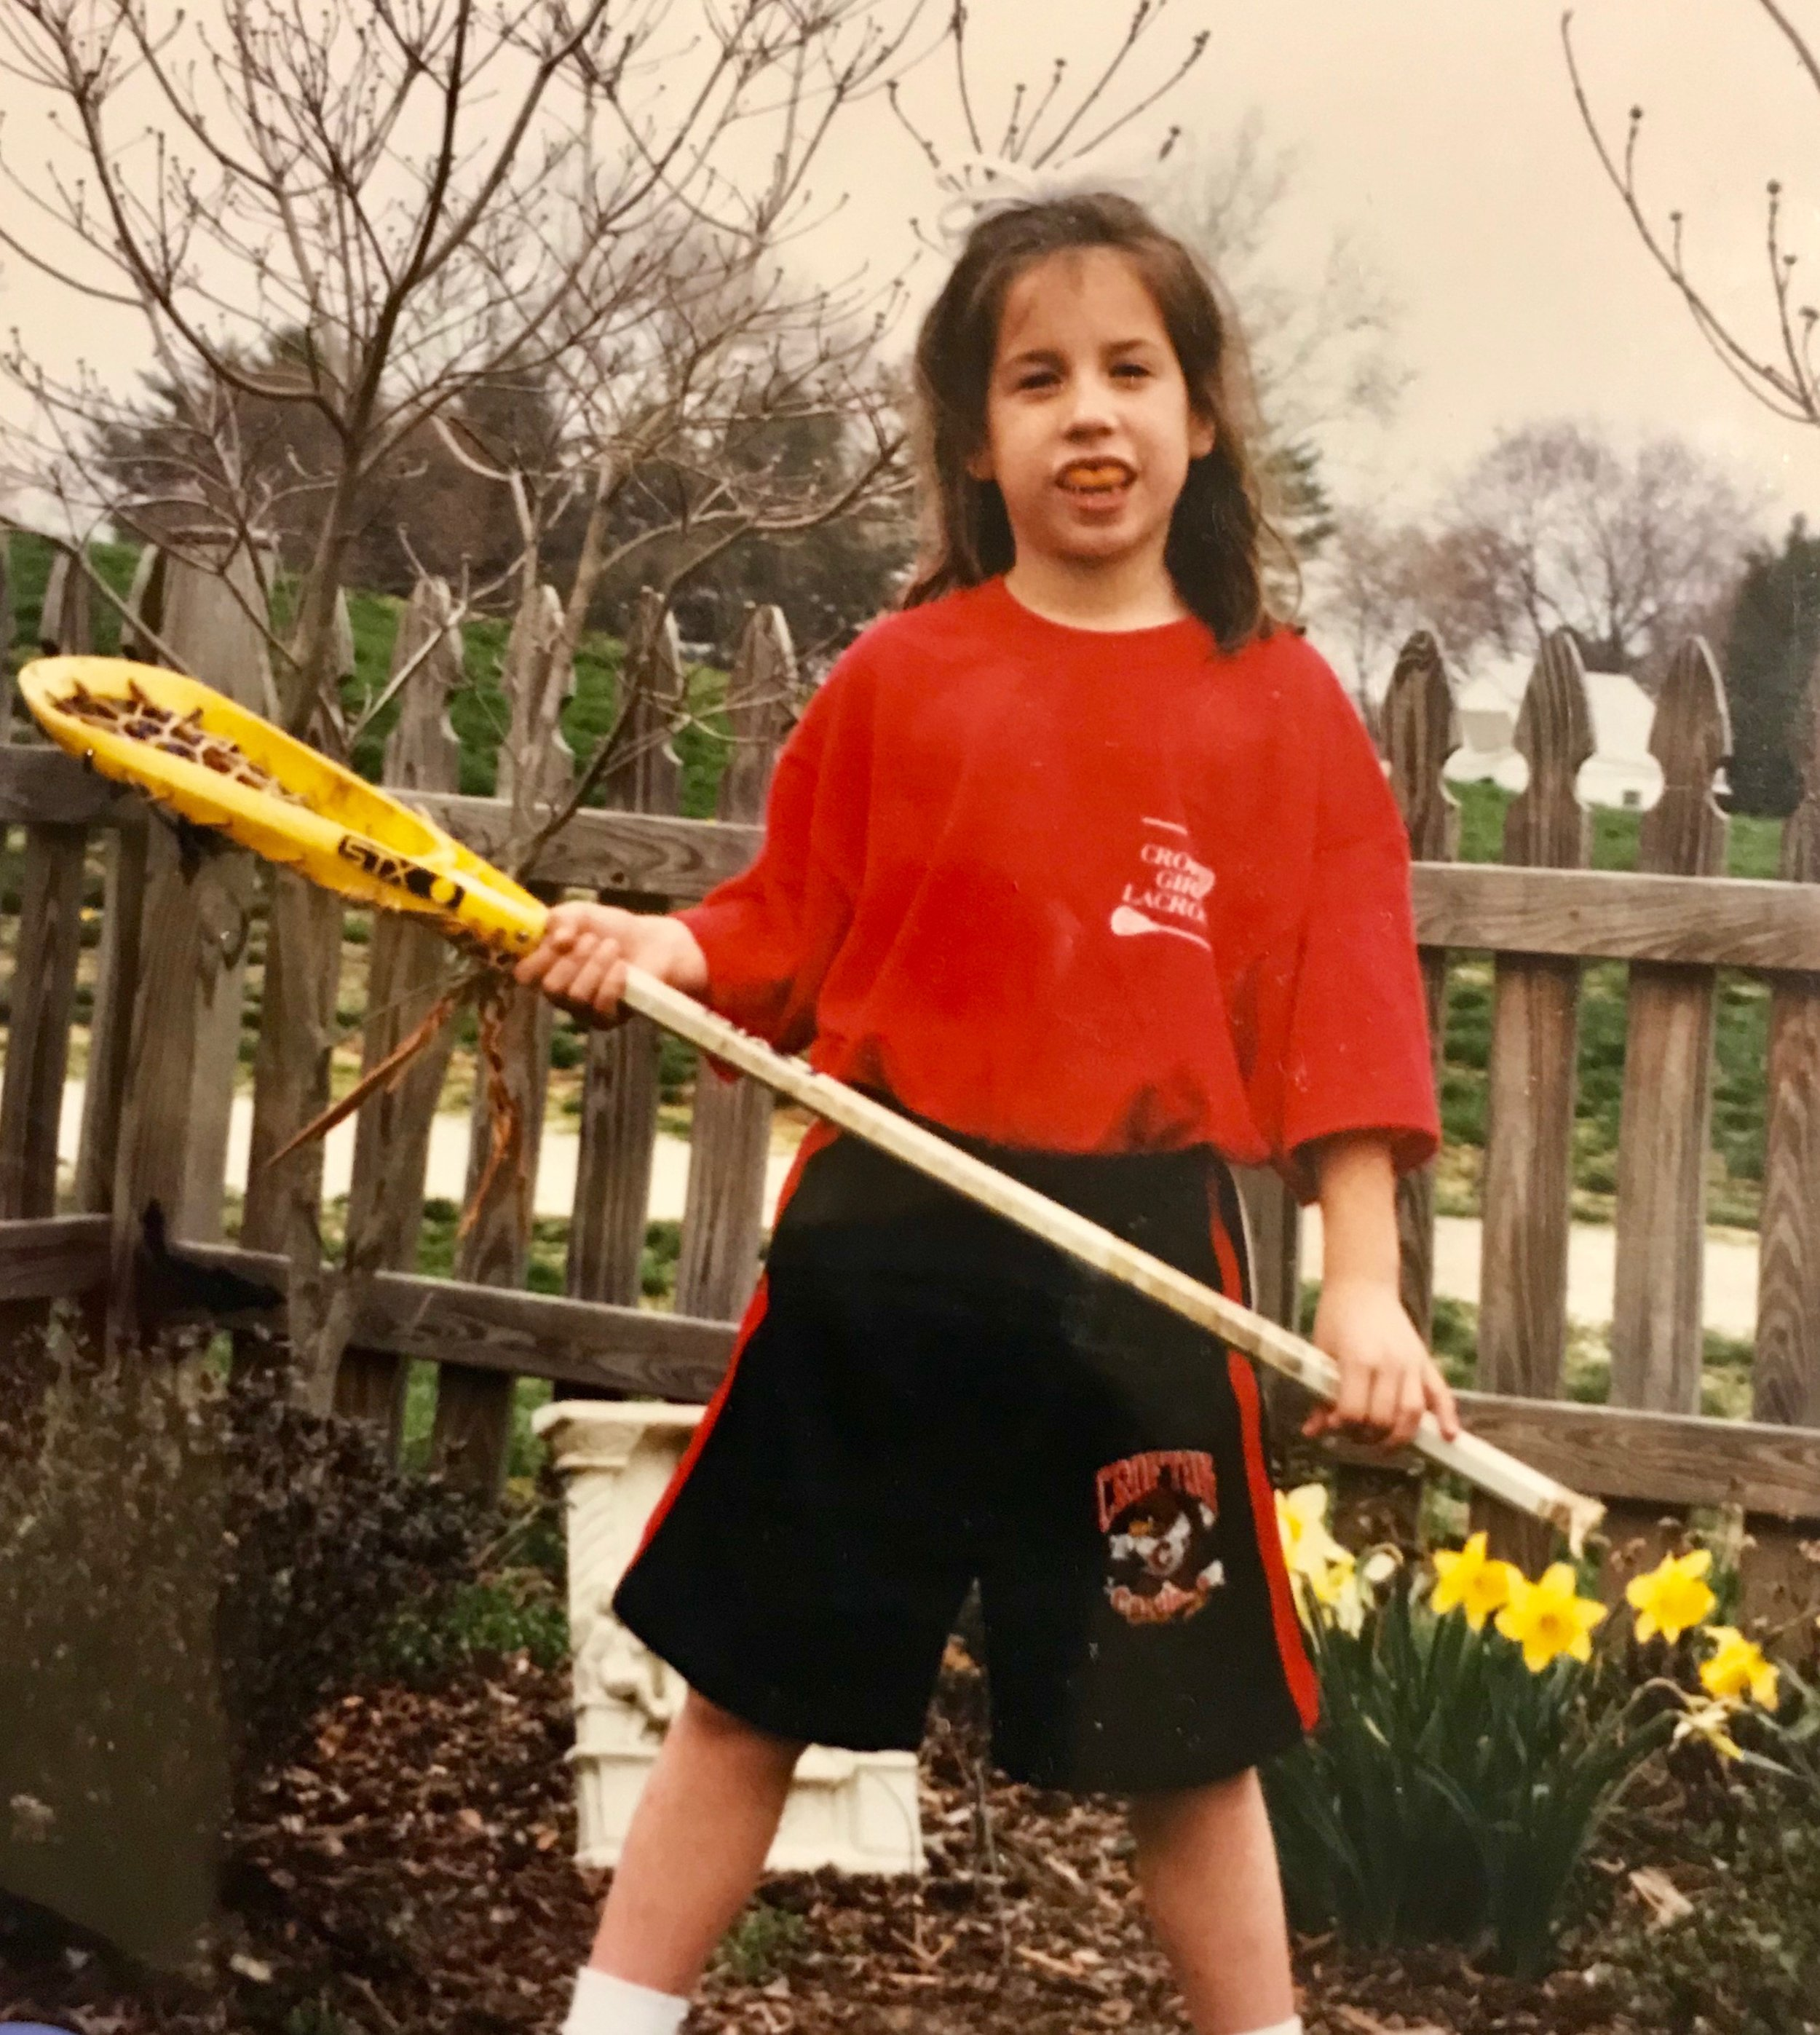 My first year of lacrosse at age 5.